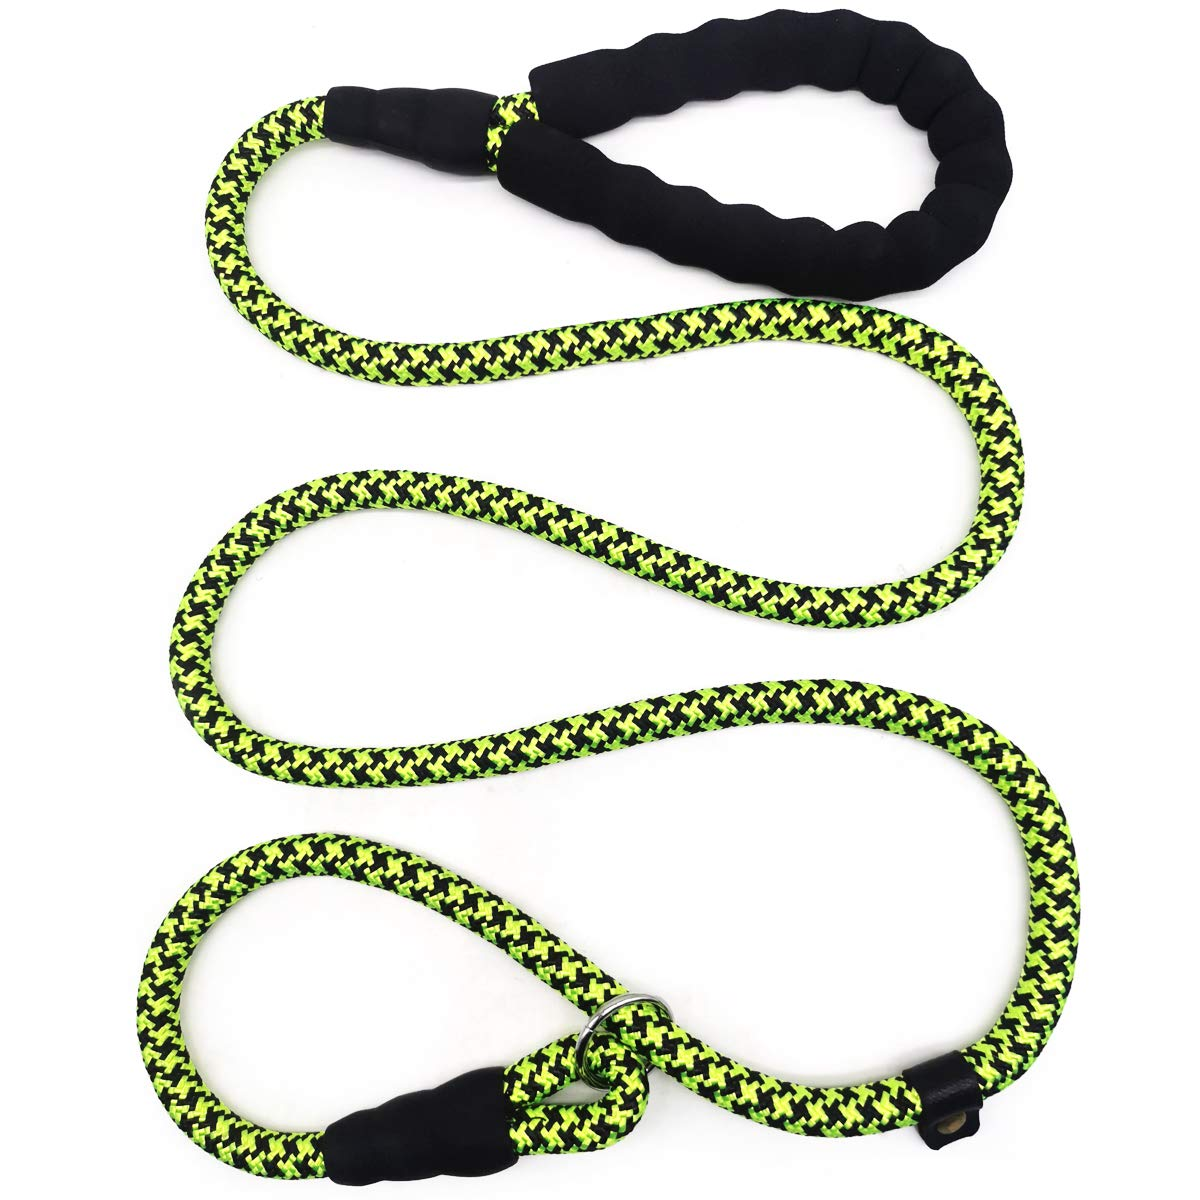 Mycicy Durable Rope Slip Collar Choke Dog Lead- Extremely Comfortable Handle No-Pull Pet Training Leash for Medium and Large Dogs-1.5mx12mm